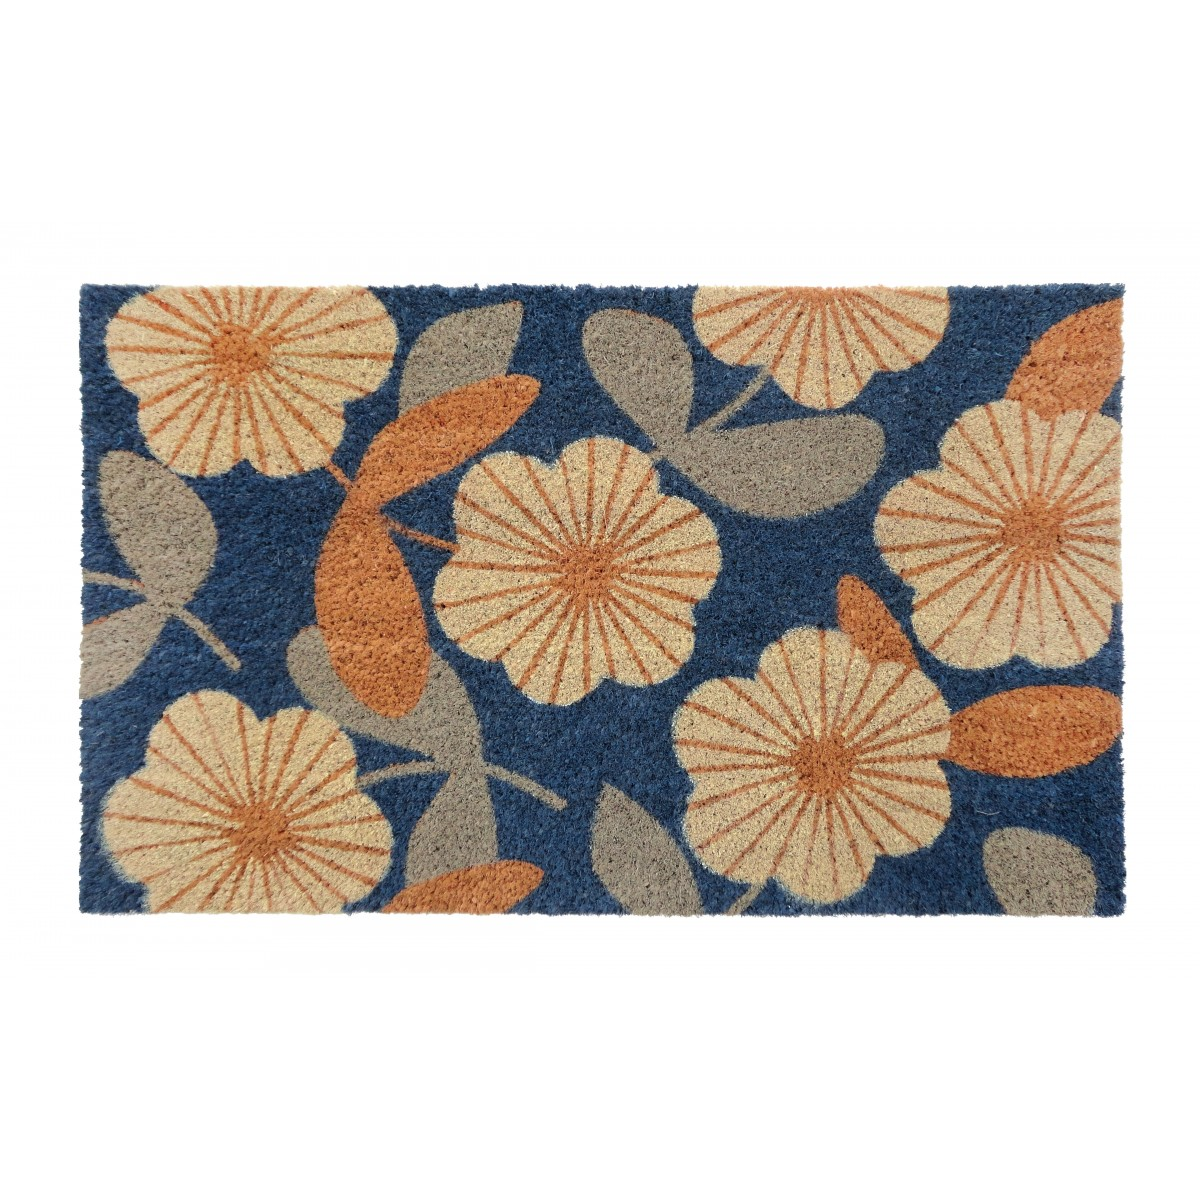 PVC Backed Coir Door Mat Floral